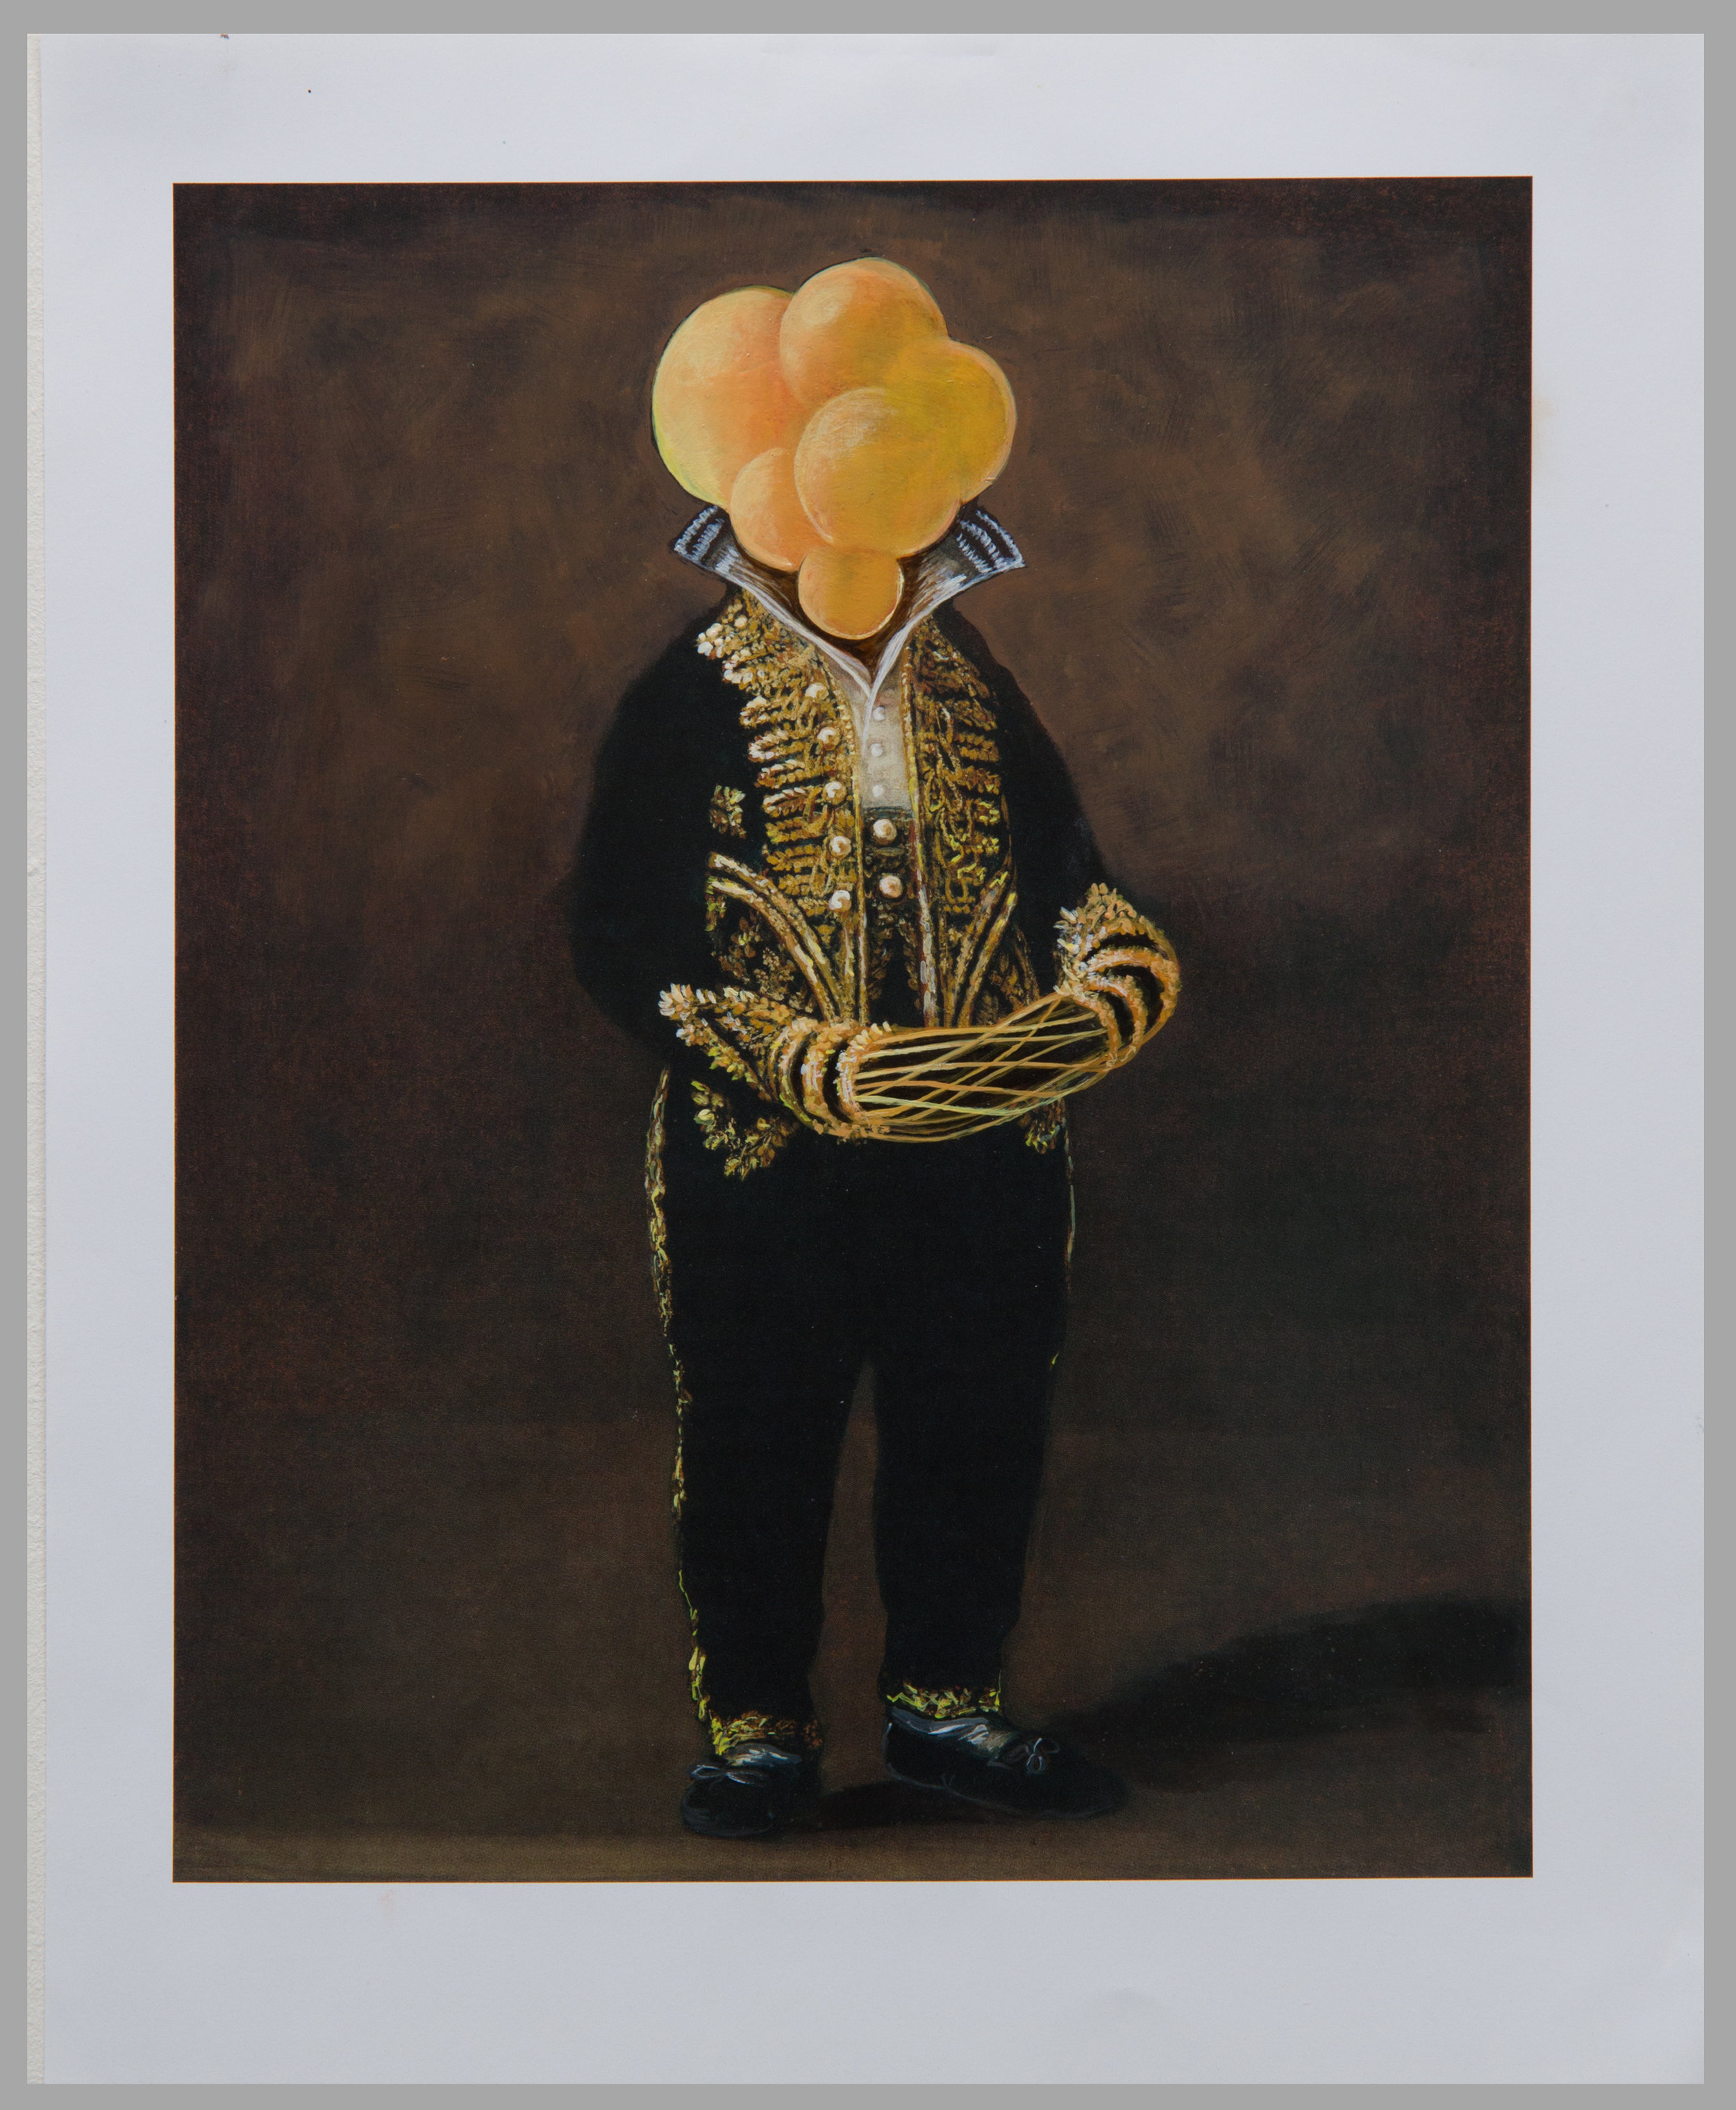 Balloon Head, 2016